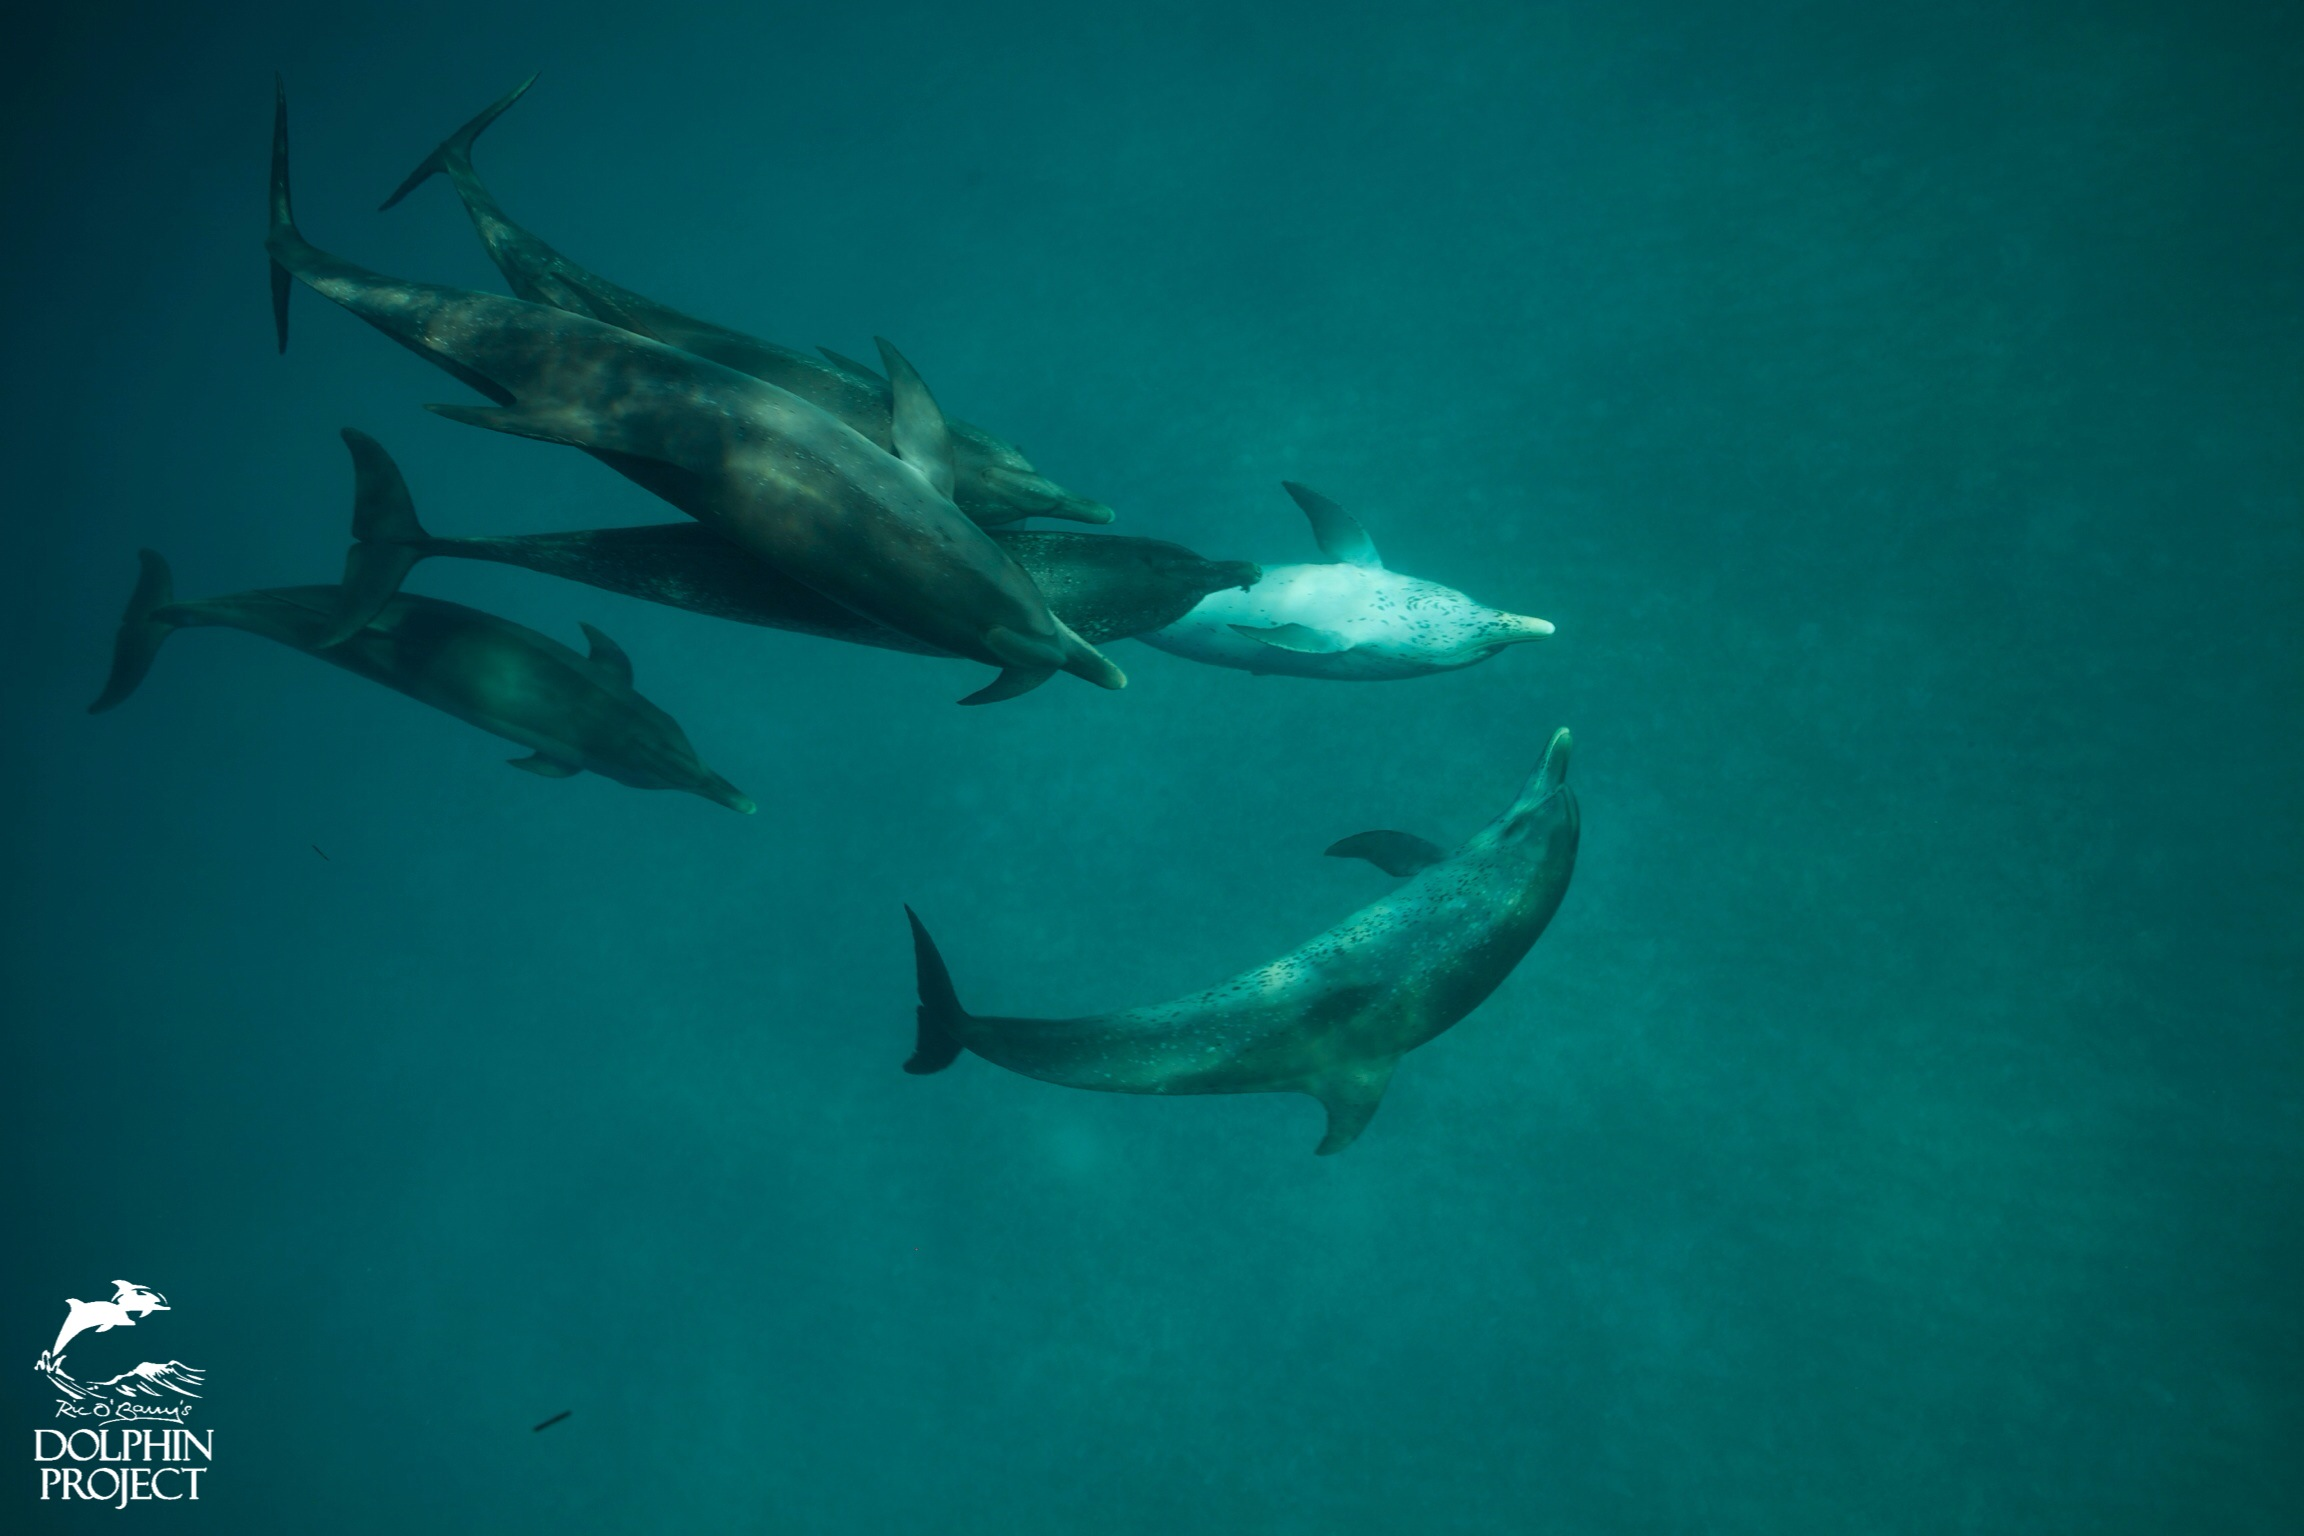 Wild spotted and bottlenose dolphins swim together in the Bahamas.